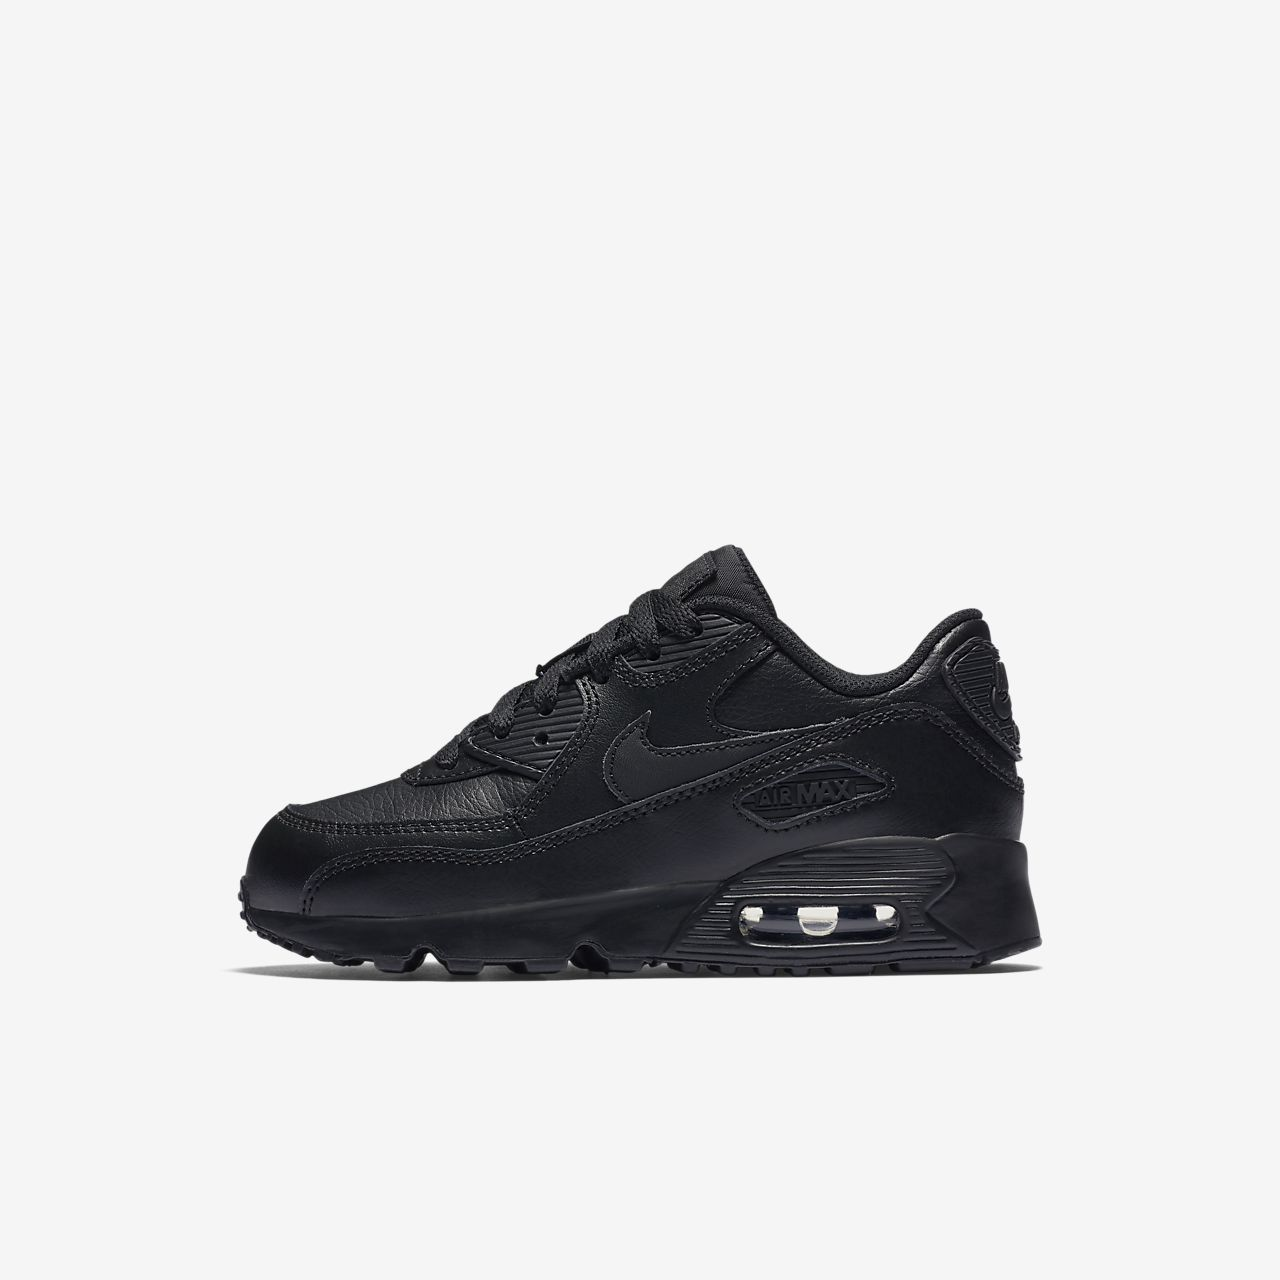 huge selection of 7ab5a 0a174 ... Nike Air Max 90 Leather sko for små barn